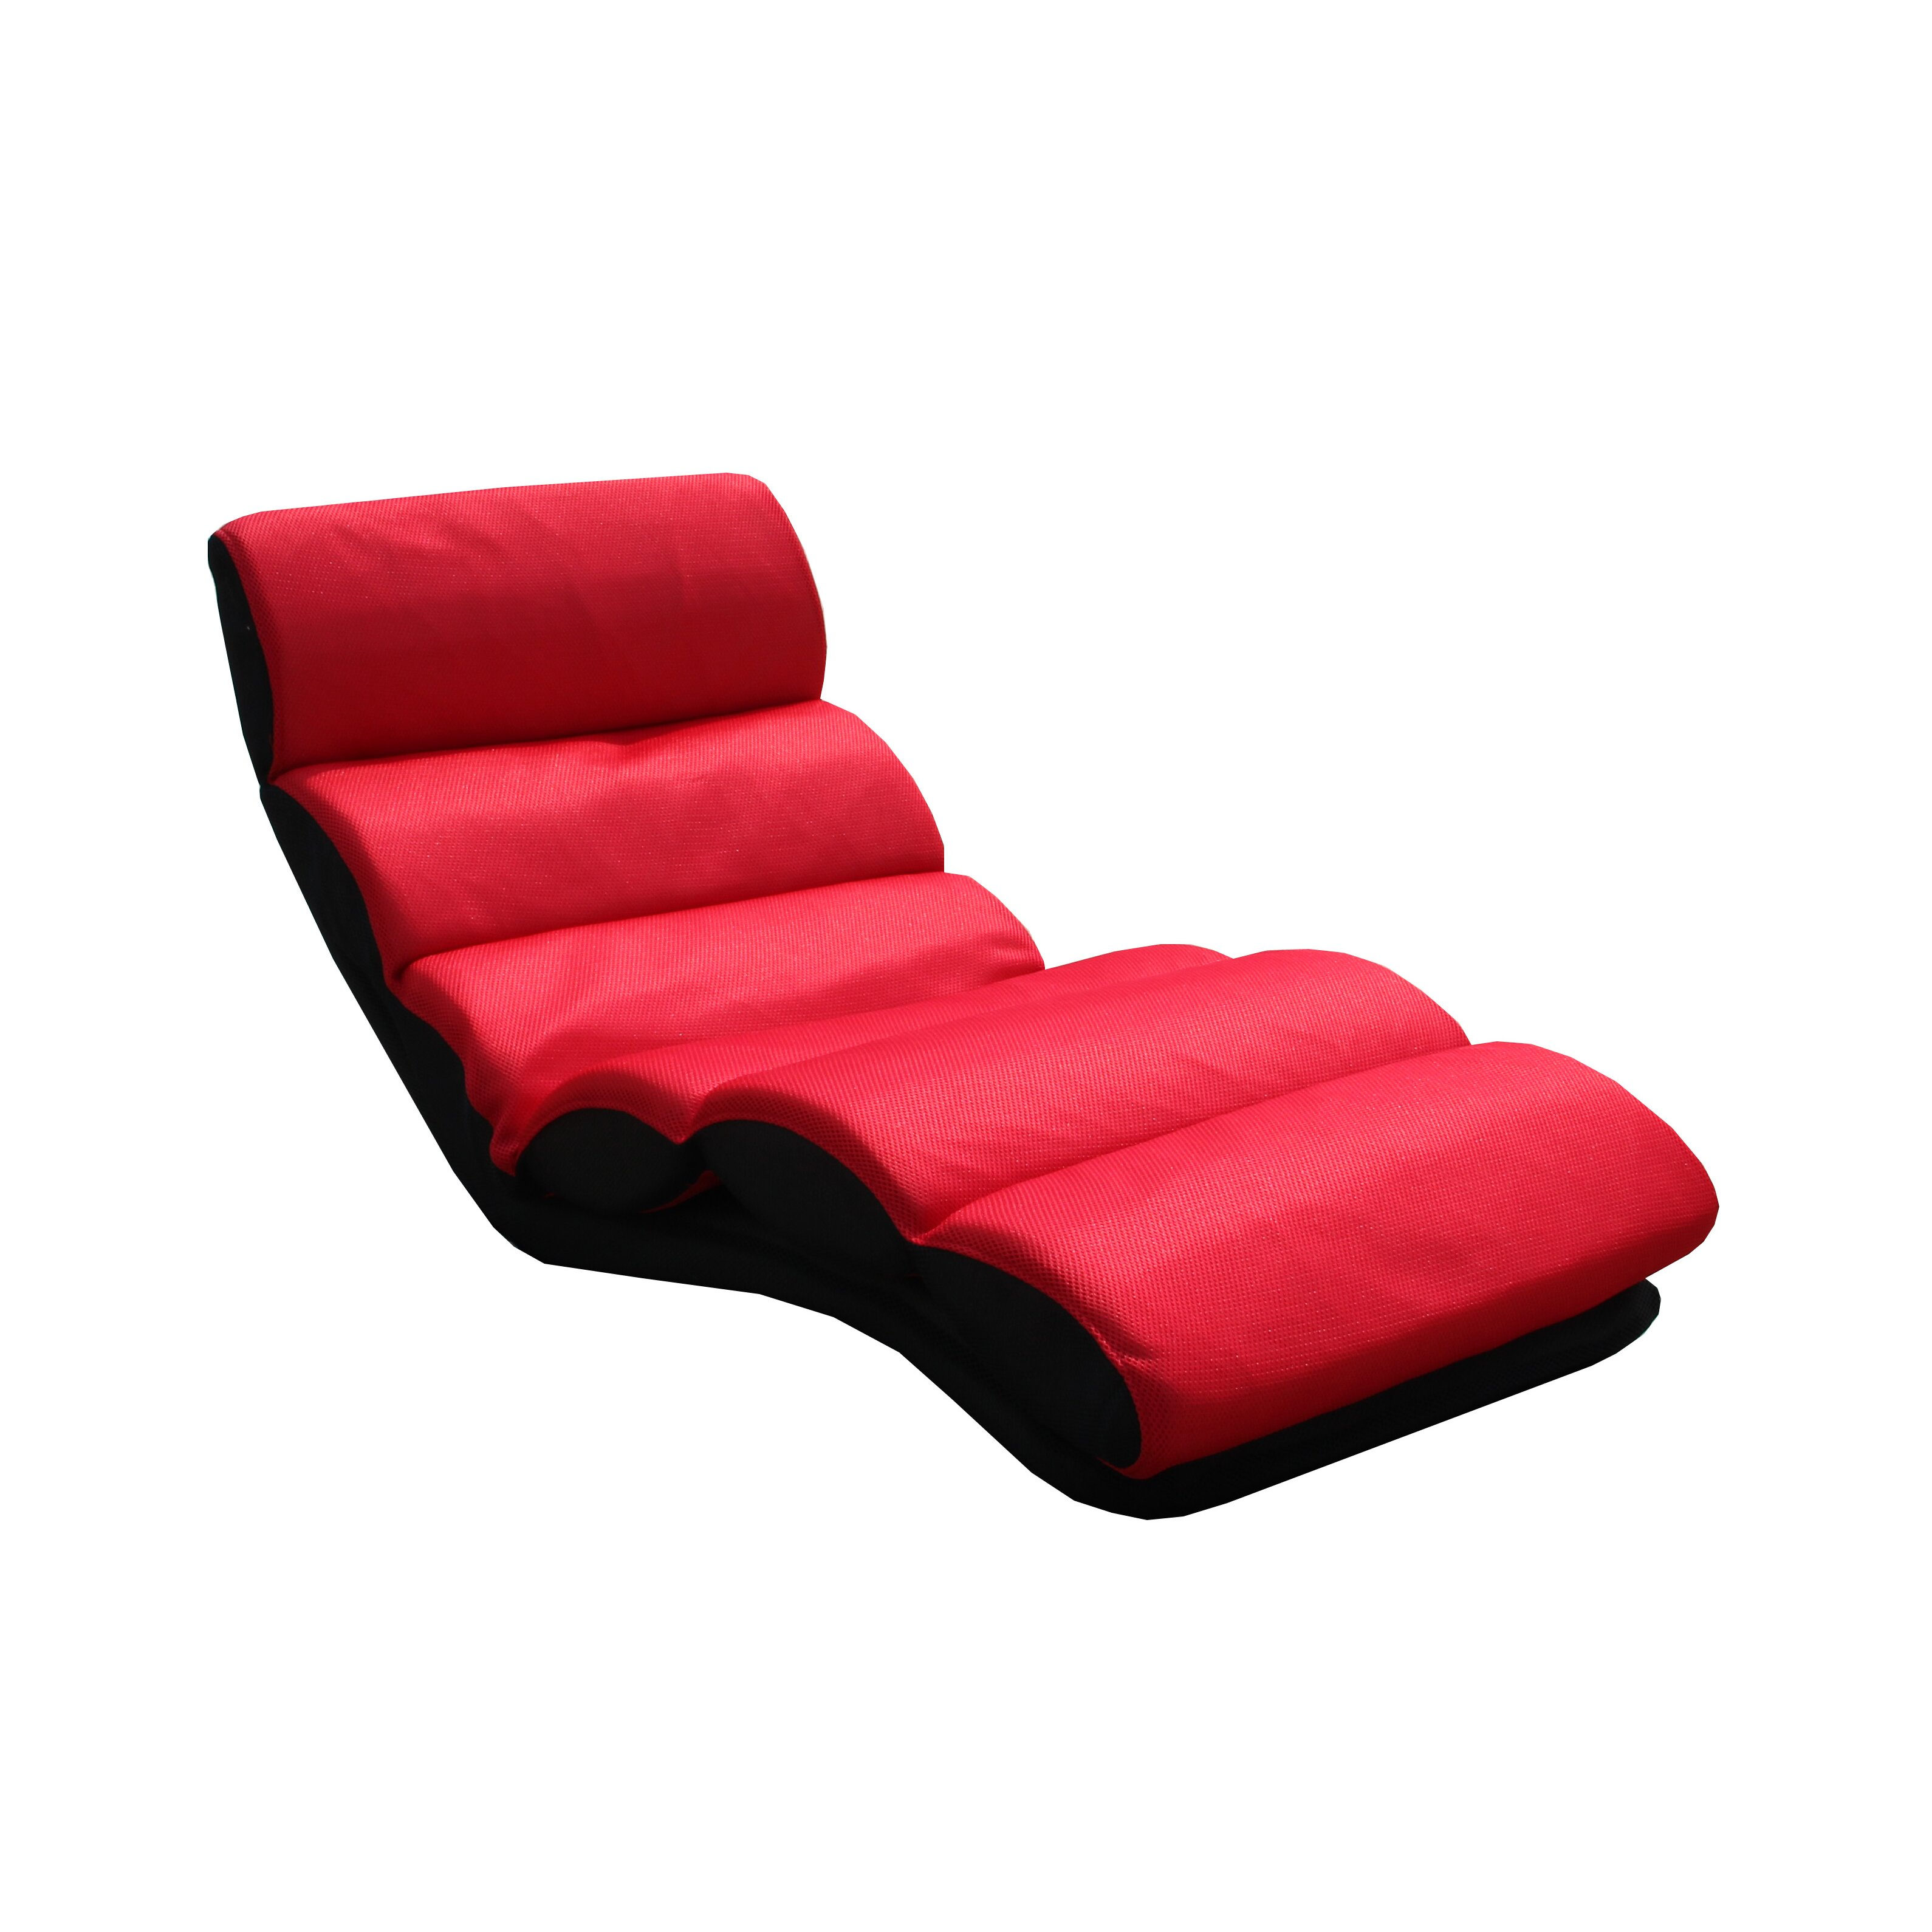 InRoom Designs Folding Lounge Chair & Reviews